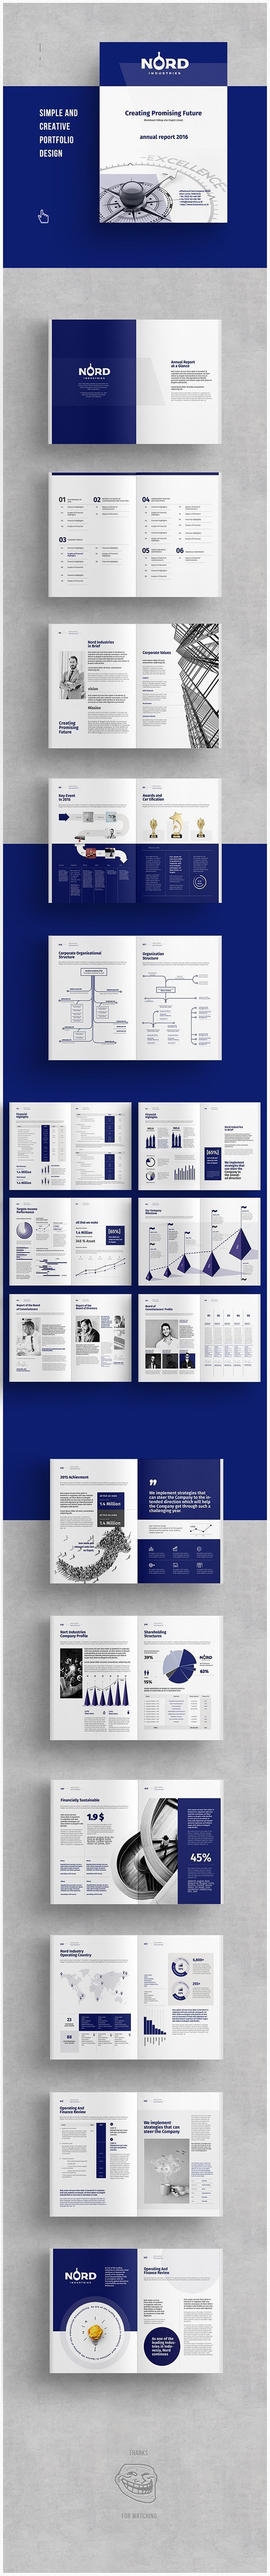 a4, annual report, annual report templates, Bank Report, brand, brief, brochure design, business, clean, Clean Report, corporate, creative, design, finance, financial, informational, light, minimal, modern, professional, project proposal, proposal, propos… #CorporateFinance #FinancePoster